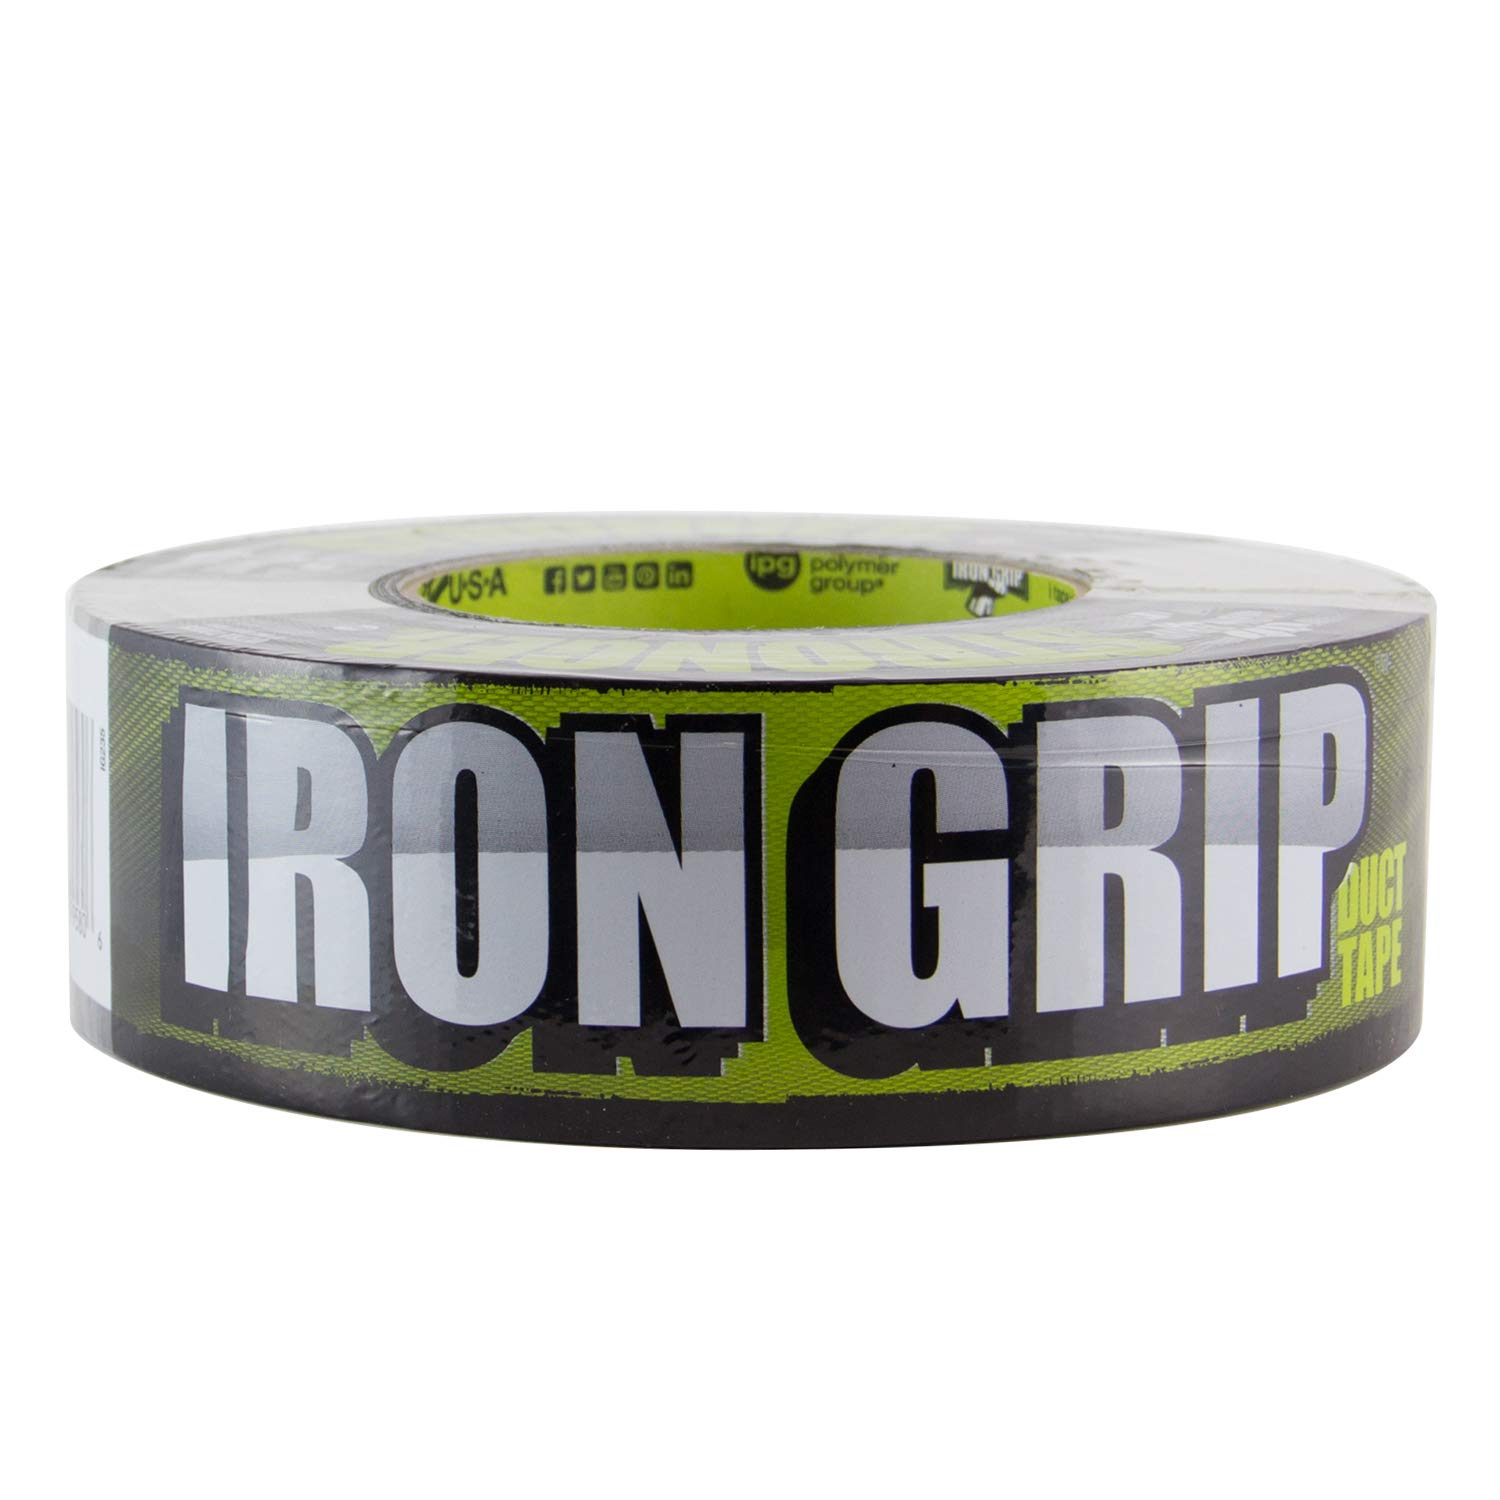 IPG Iron Grip 17 Mil Heavy Duty Duct Tape 1.88'' x 35 yd, Black by Intertape Polymer Group